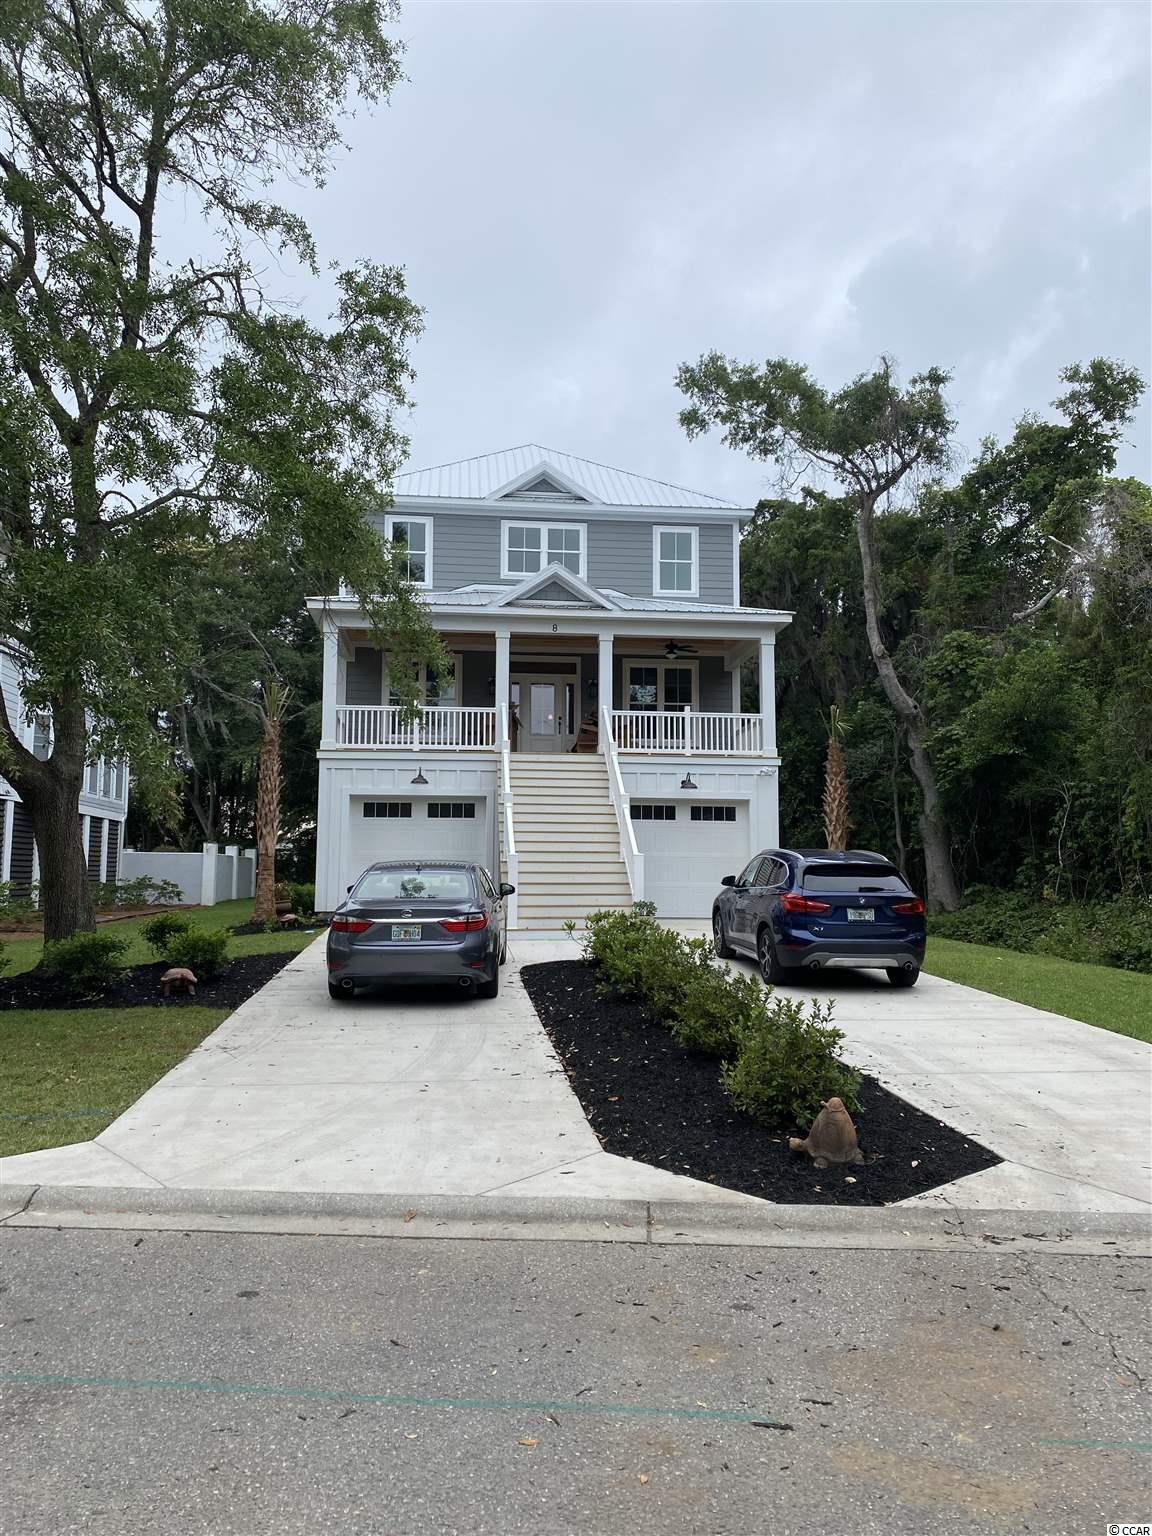 Brand New Construction. Still time to Personalize and Picks some features and Colors. House is in final phases of construction and will be ready to move into early spring. Private Community with Gate and Code. Make sure to check out the Community dock to Pawleys Island Creek where residents keep their creek kayaks, paddleboards and other creek toys!   Owner is an SC licensed realtor